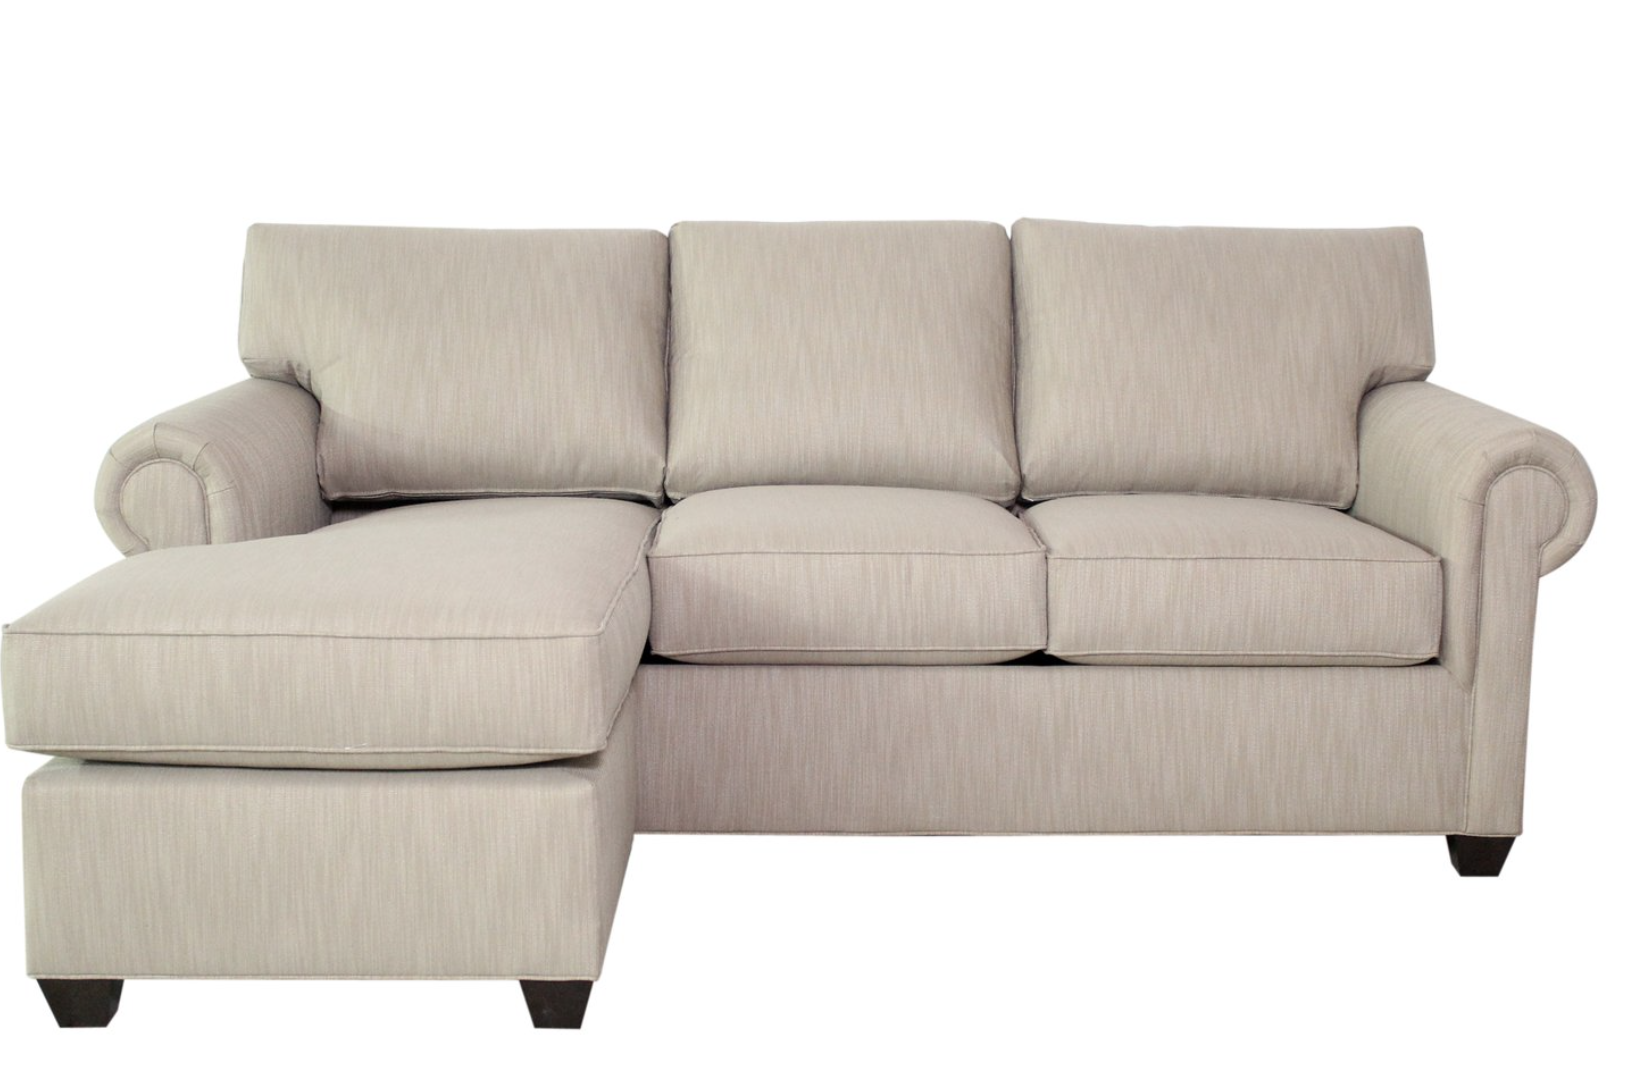 pottery barn style sofa for less